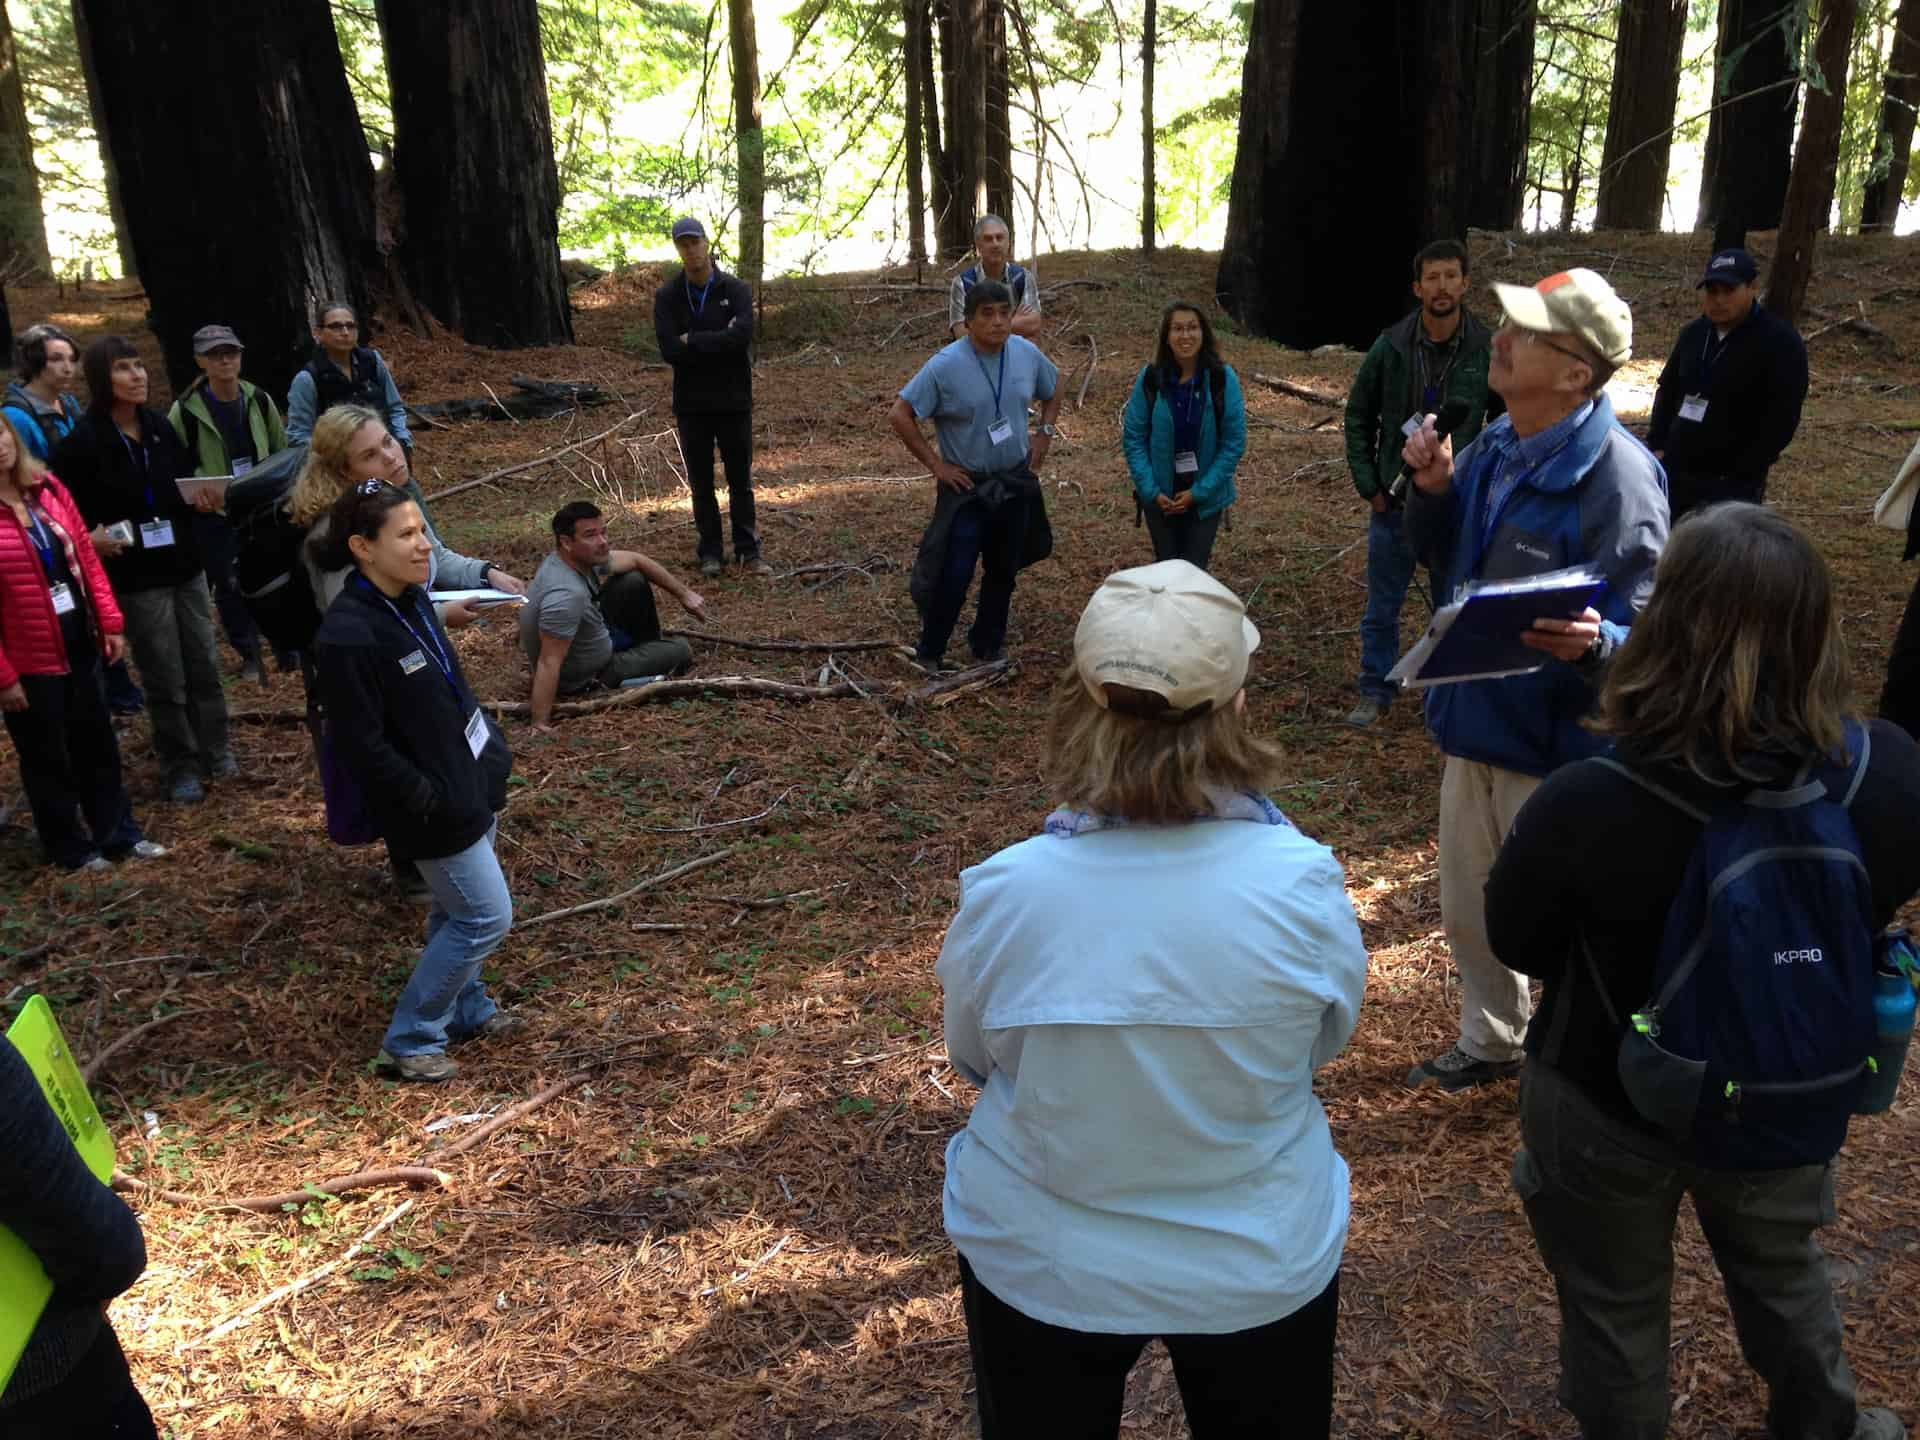 Field tour participants standing in an area burned in the 2003 Canoe Fire in Humboldt Redwoods State Park (Sept. 15, 2016).